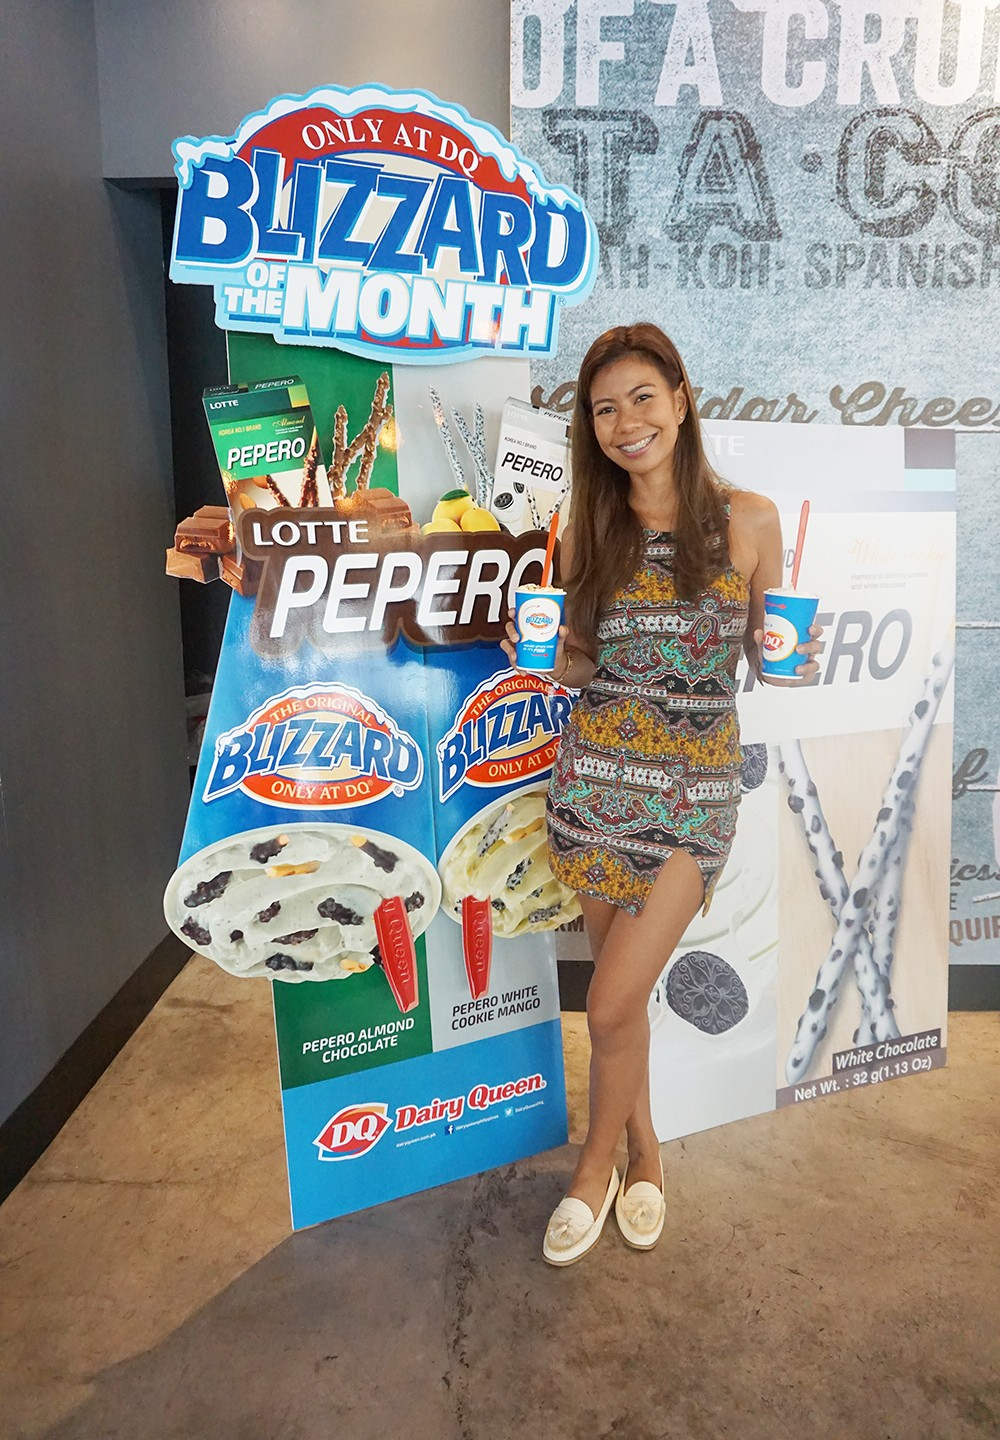 Dairy Queen's Blizzard of the Month: Pepero Blizzard